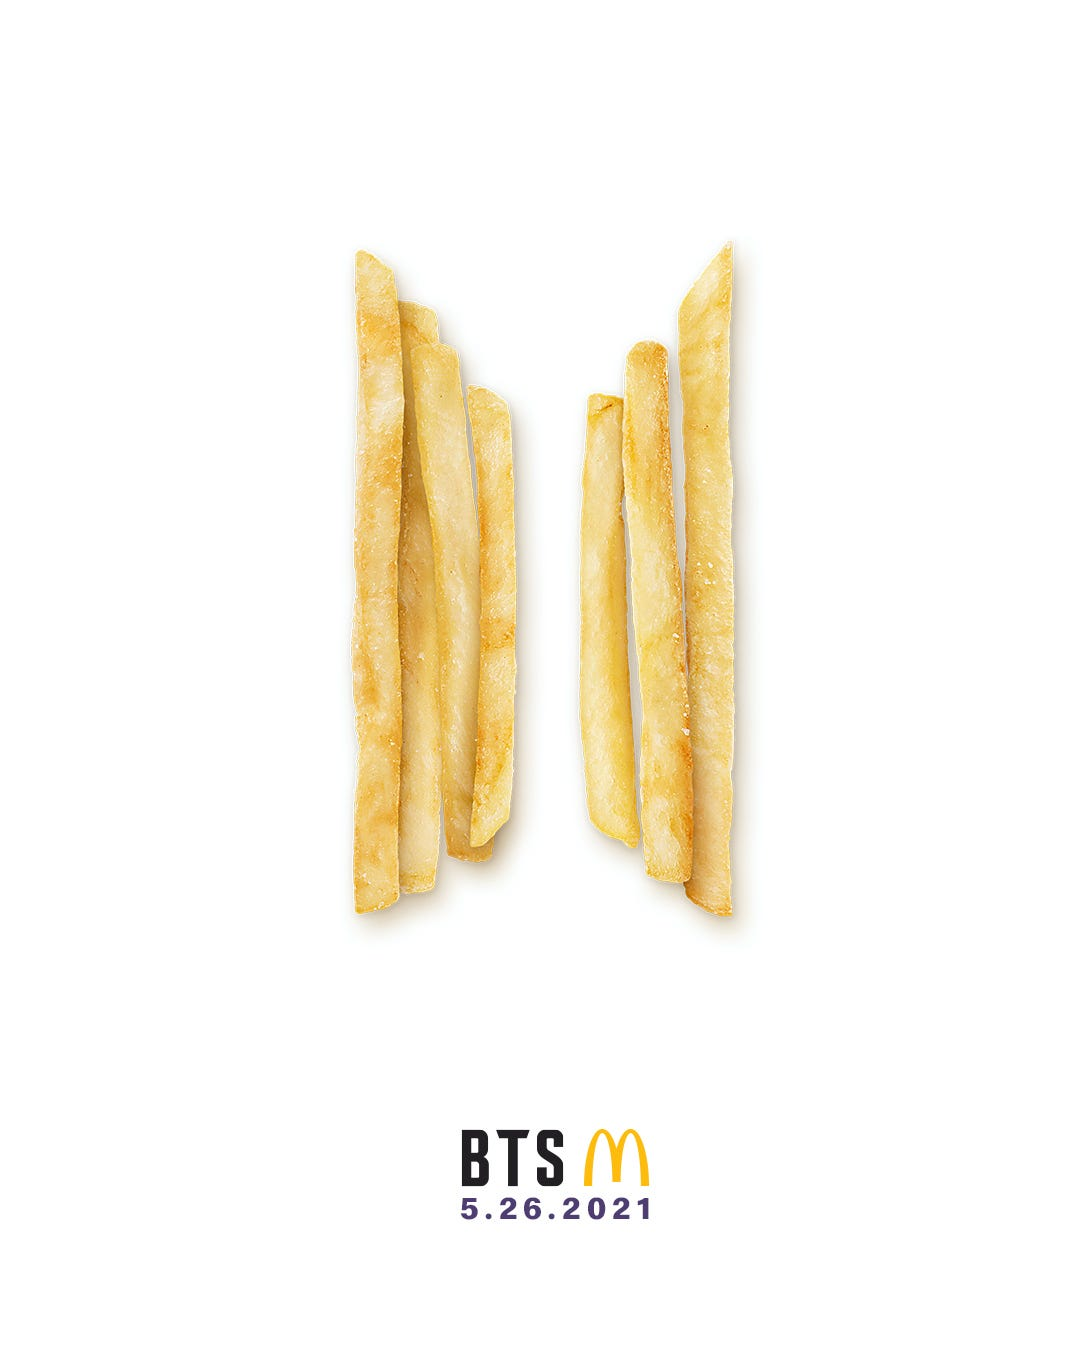 McDonald's launches BTS meal Wednesday with McNuggets and spicy dipping sauces